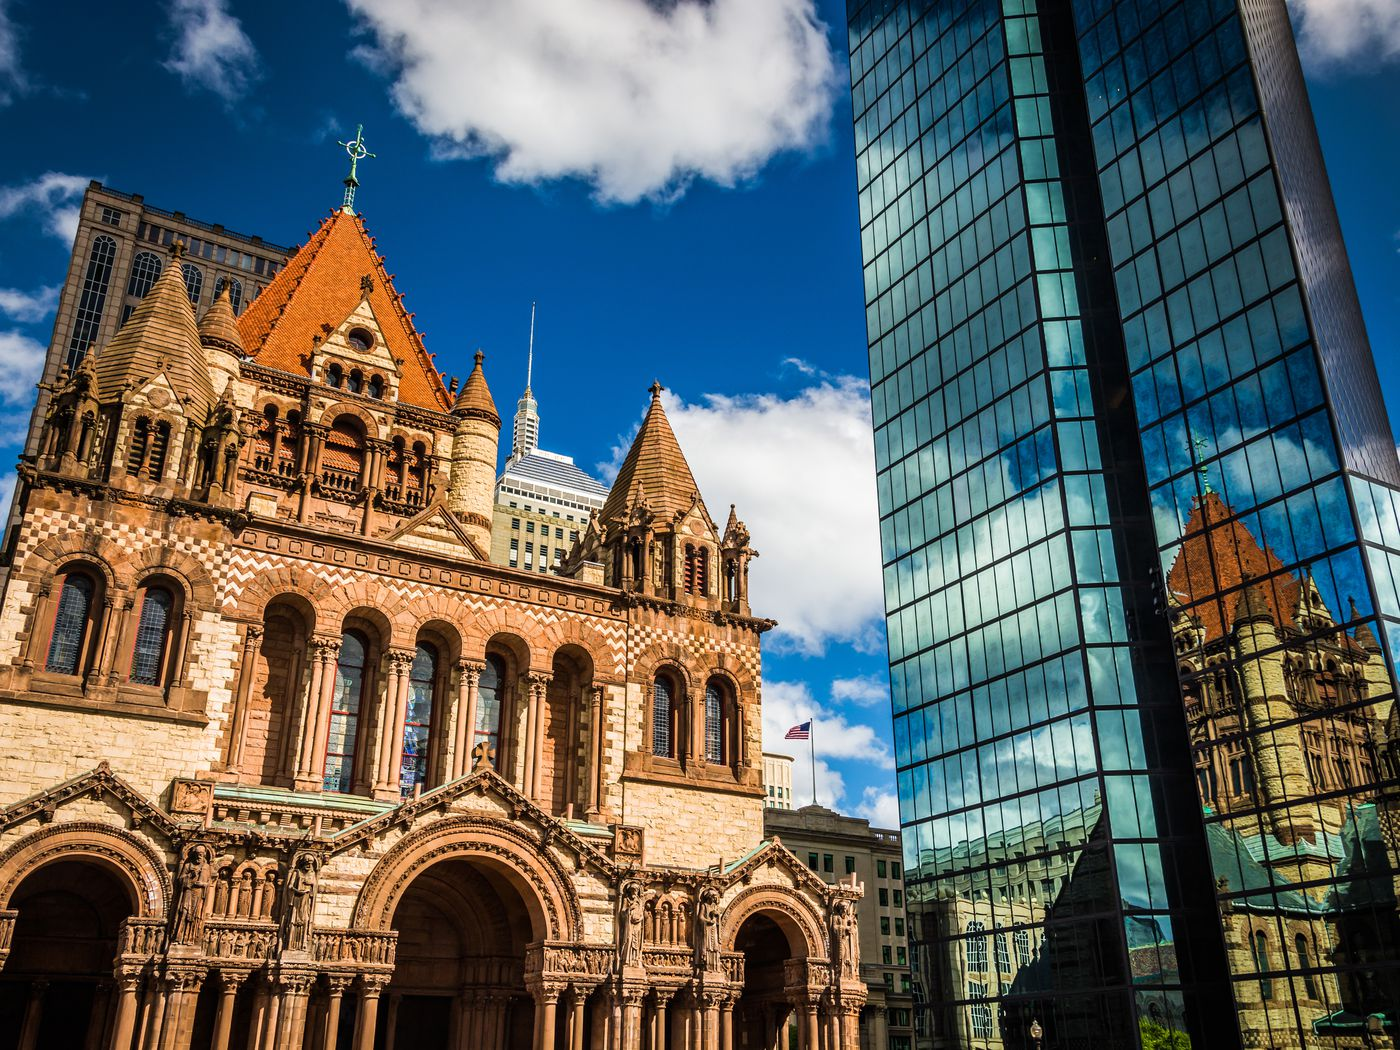 Boston's 15 most iconic buildings, mapped - Curbed Boston